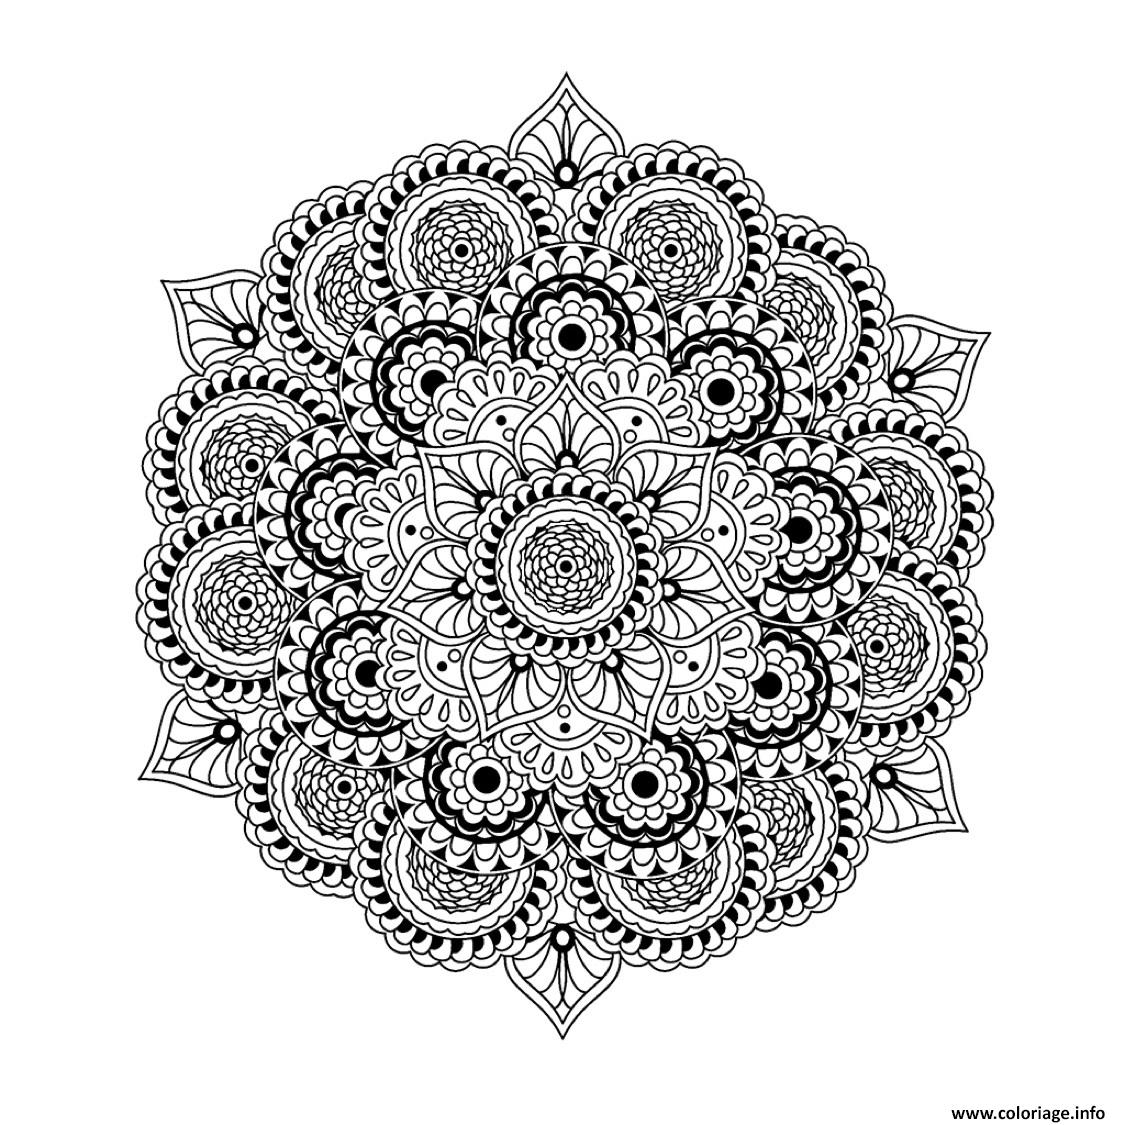 coloriage mandala complexe difficile pour adulte art. Black Bedroom Furniture Sets. Home Design Ideas